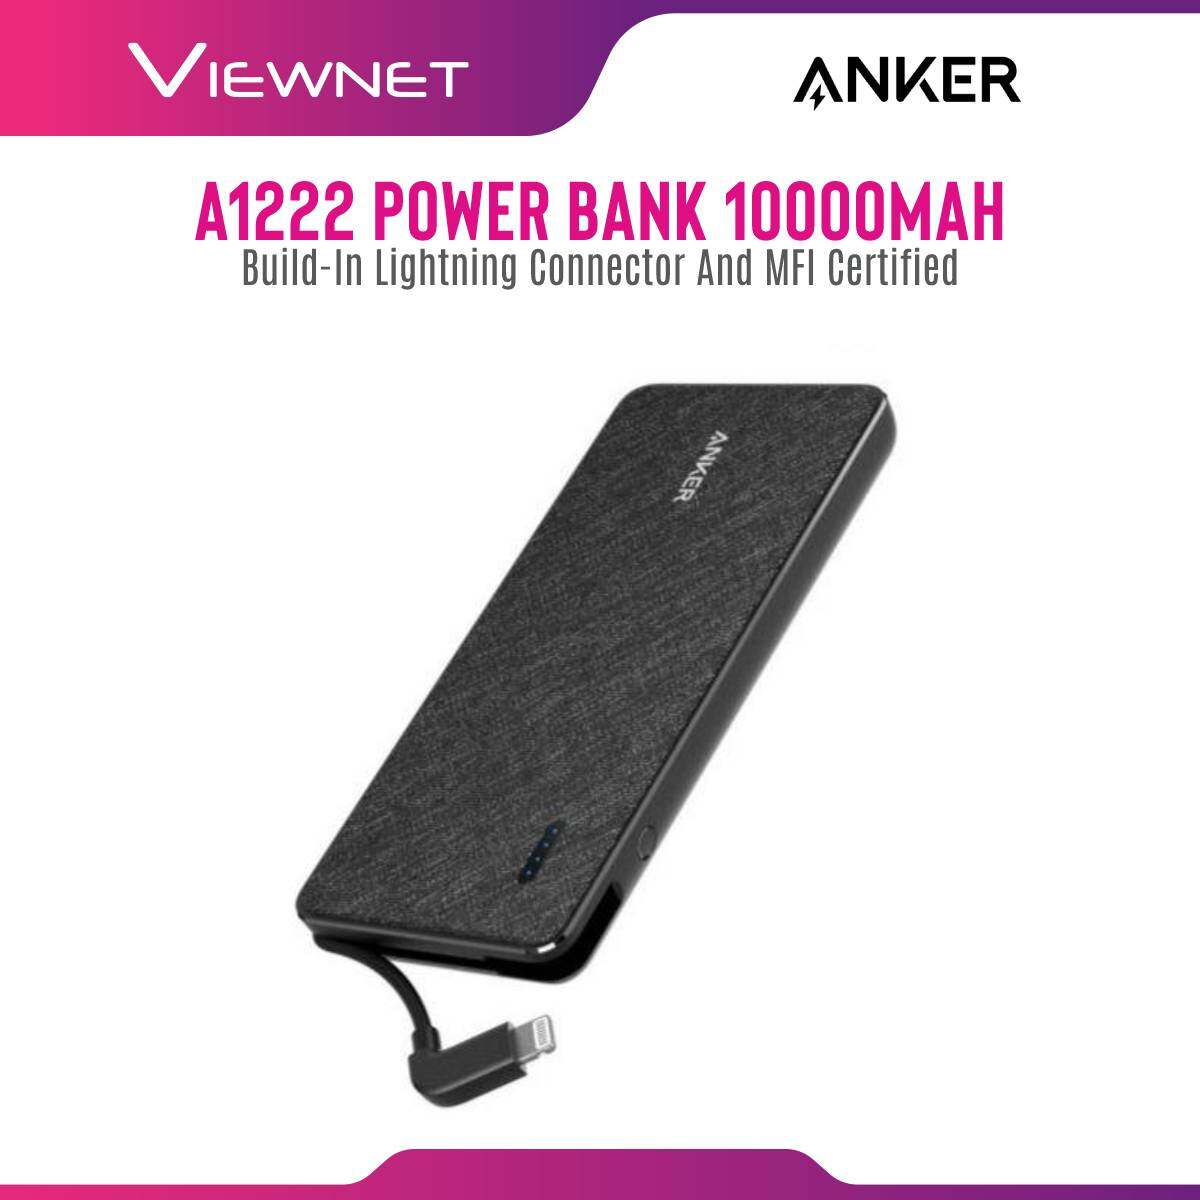 Anker A1222 PowerCore+ Metro 10000mah Power Bank with build-in Lightning Connector and MFI certified